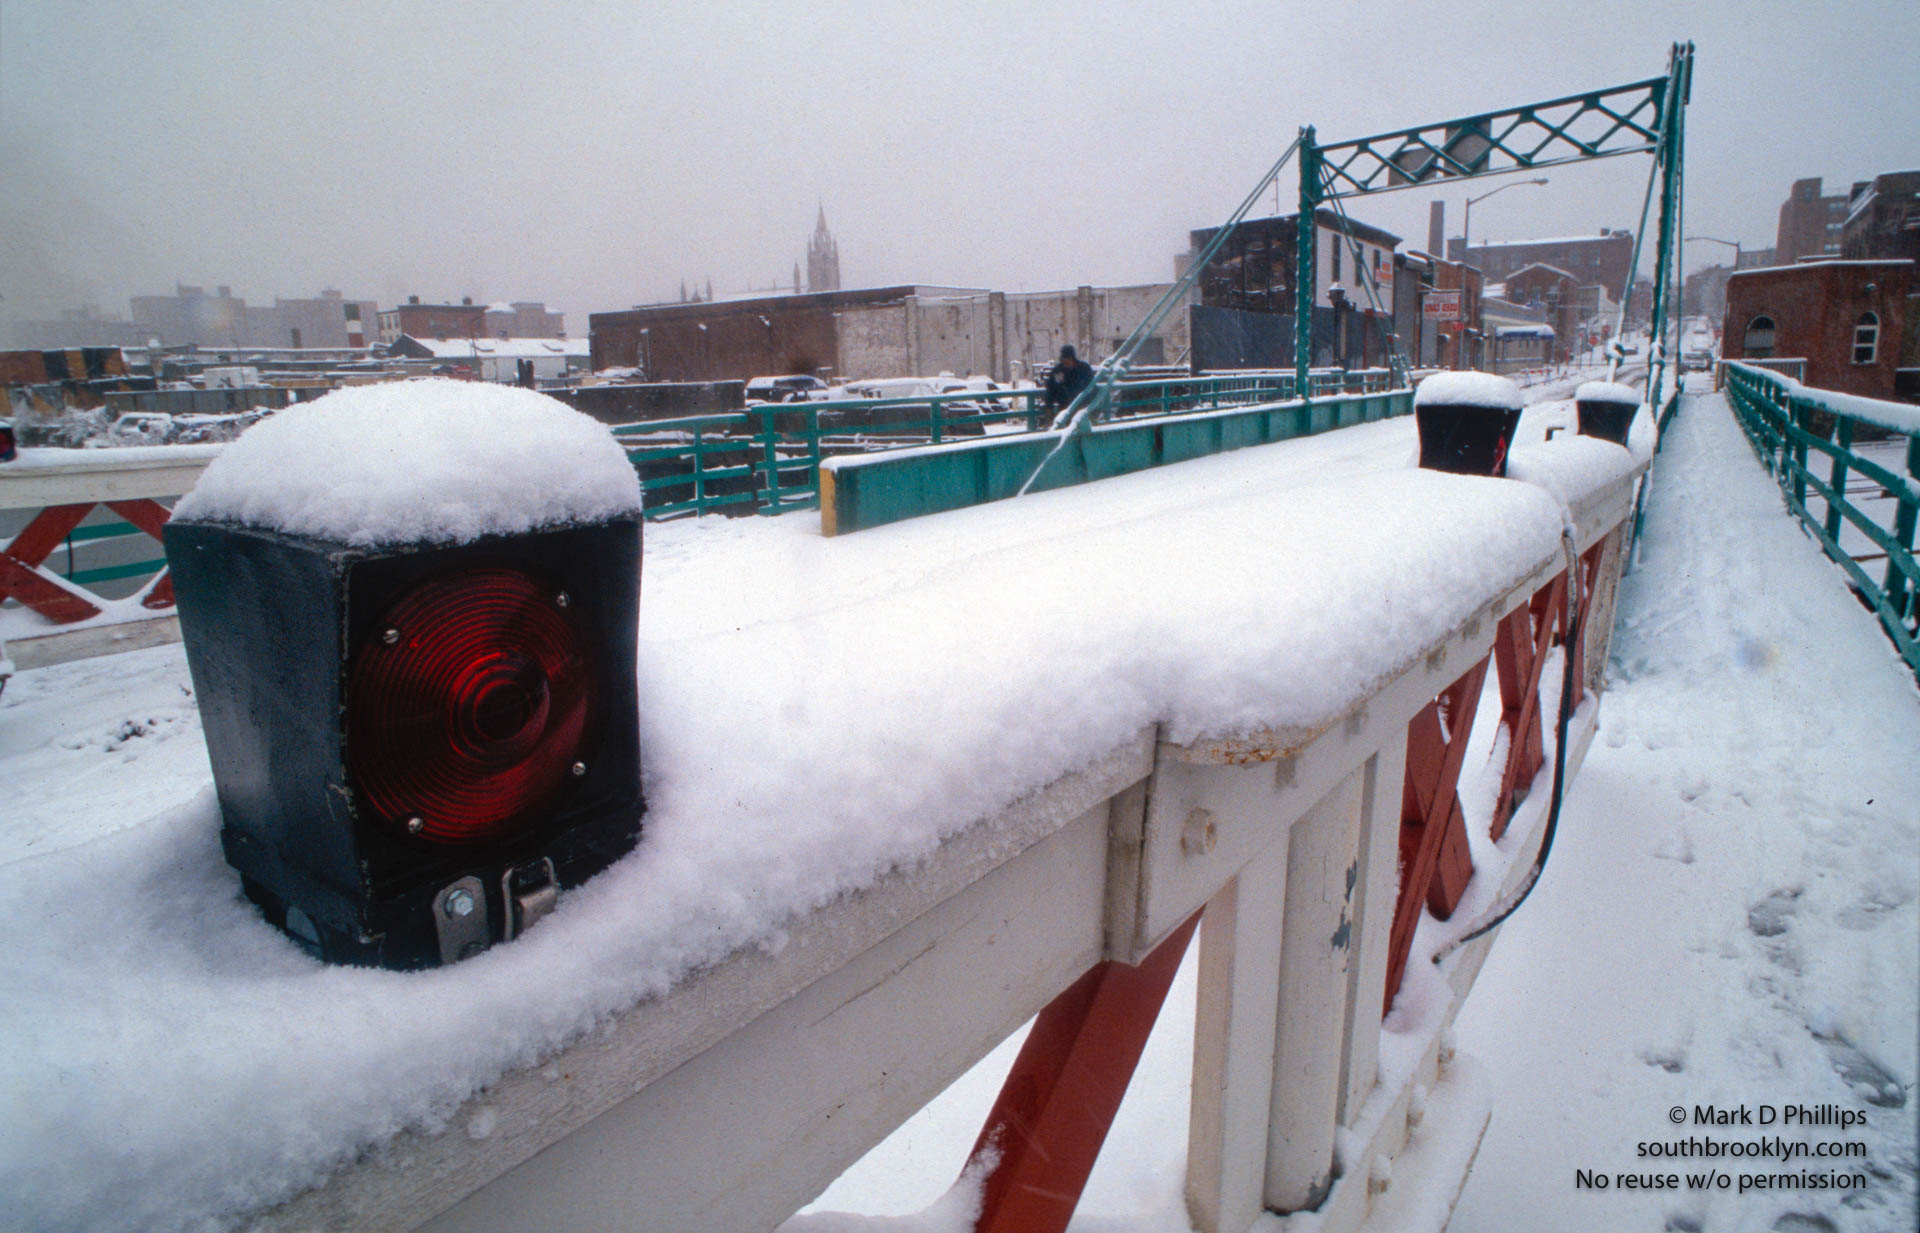 Carroll Street Bridge in the snow over the Gowanus Canal in Brooklyn, NY